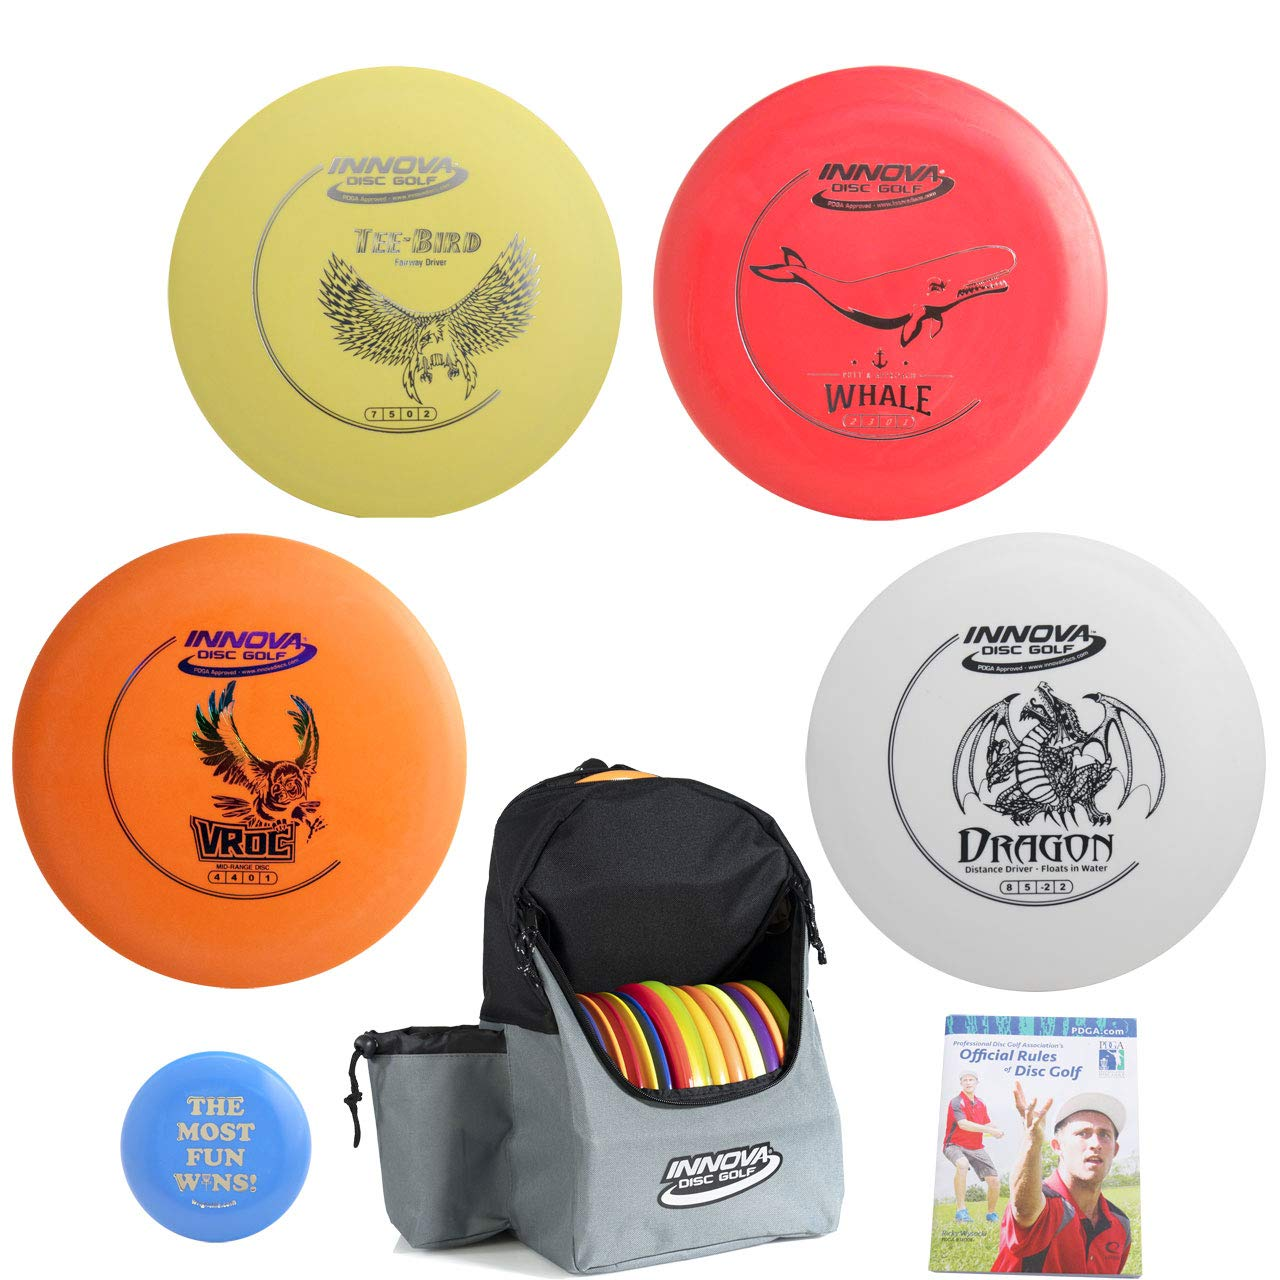 Innova Disc Golf Complete Gift Set Bundle - Discover Backpack Bag, 2 Drivers (One Floater), Mid-Range, Putter + Mini Marker Disc & Rules (7 Items) (Bag: Blue/Gray)